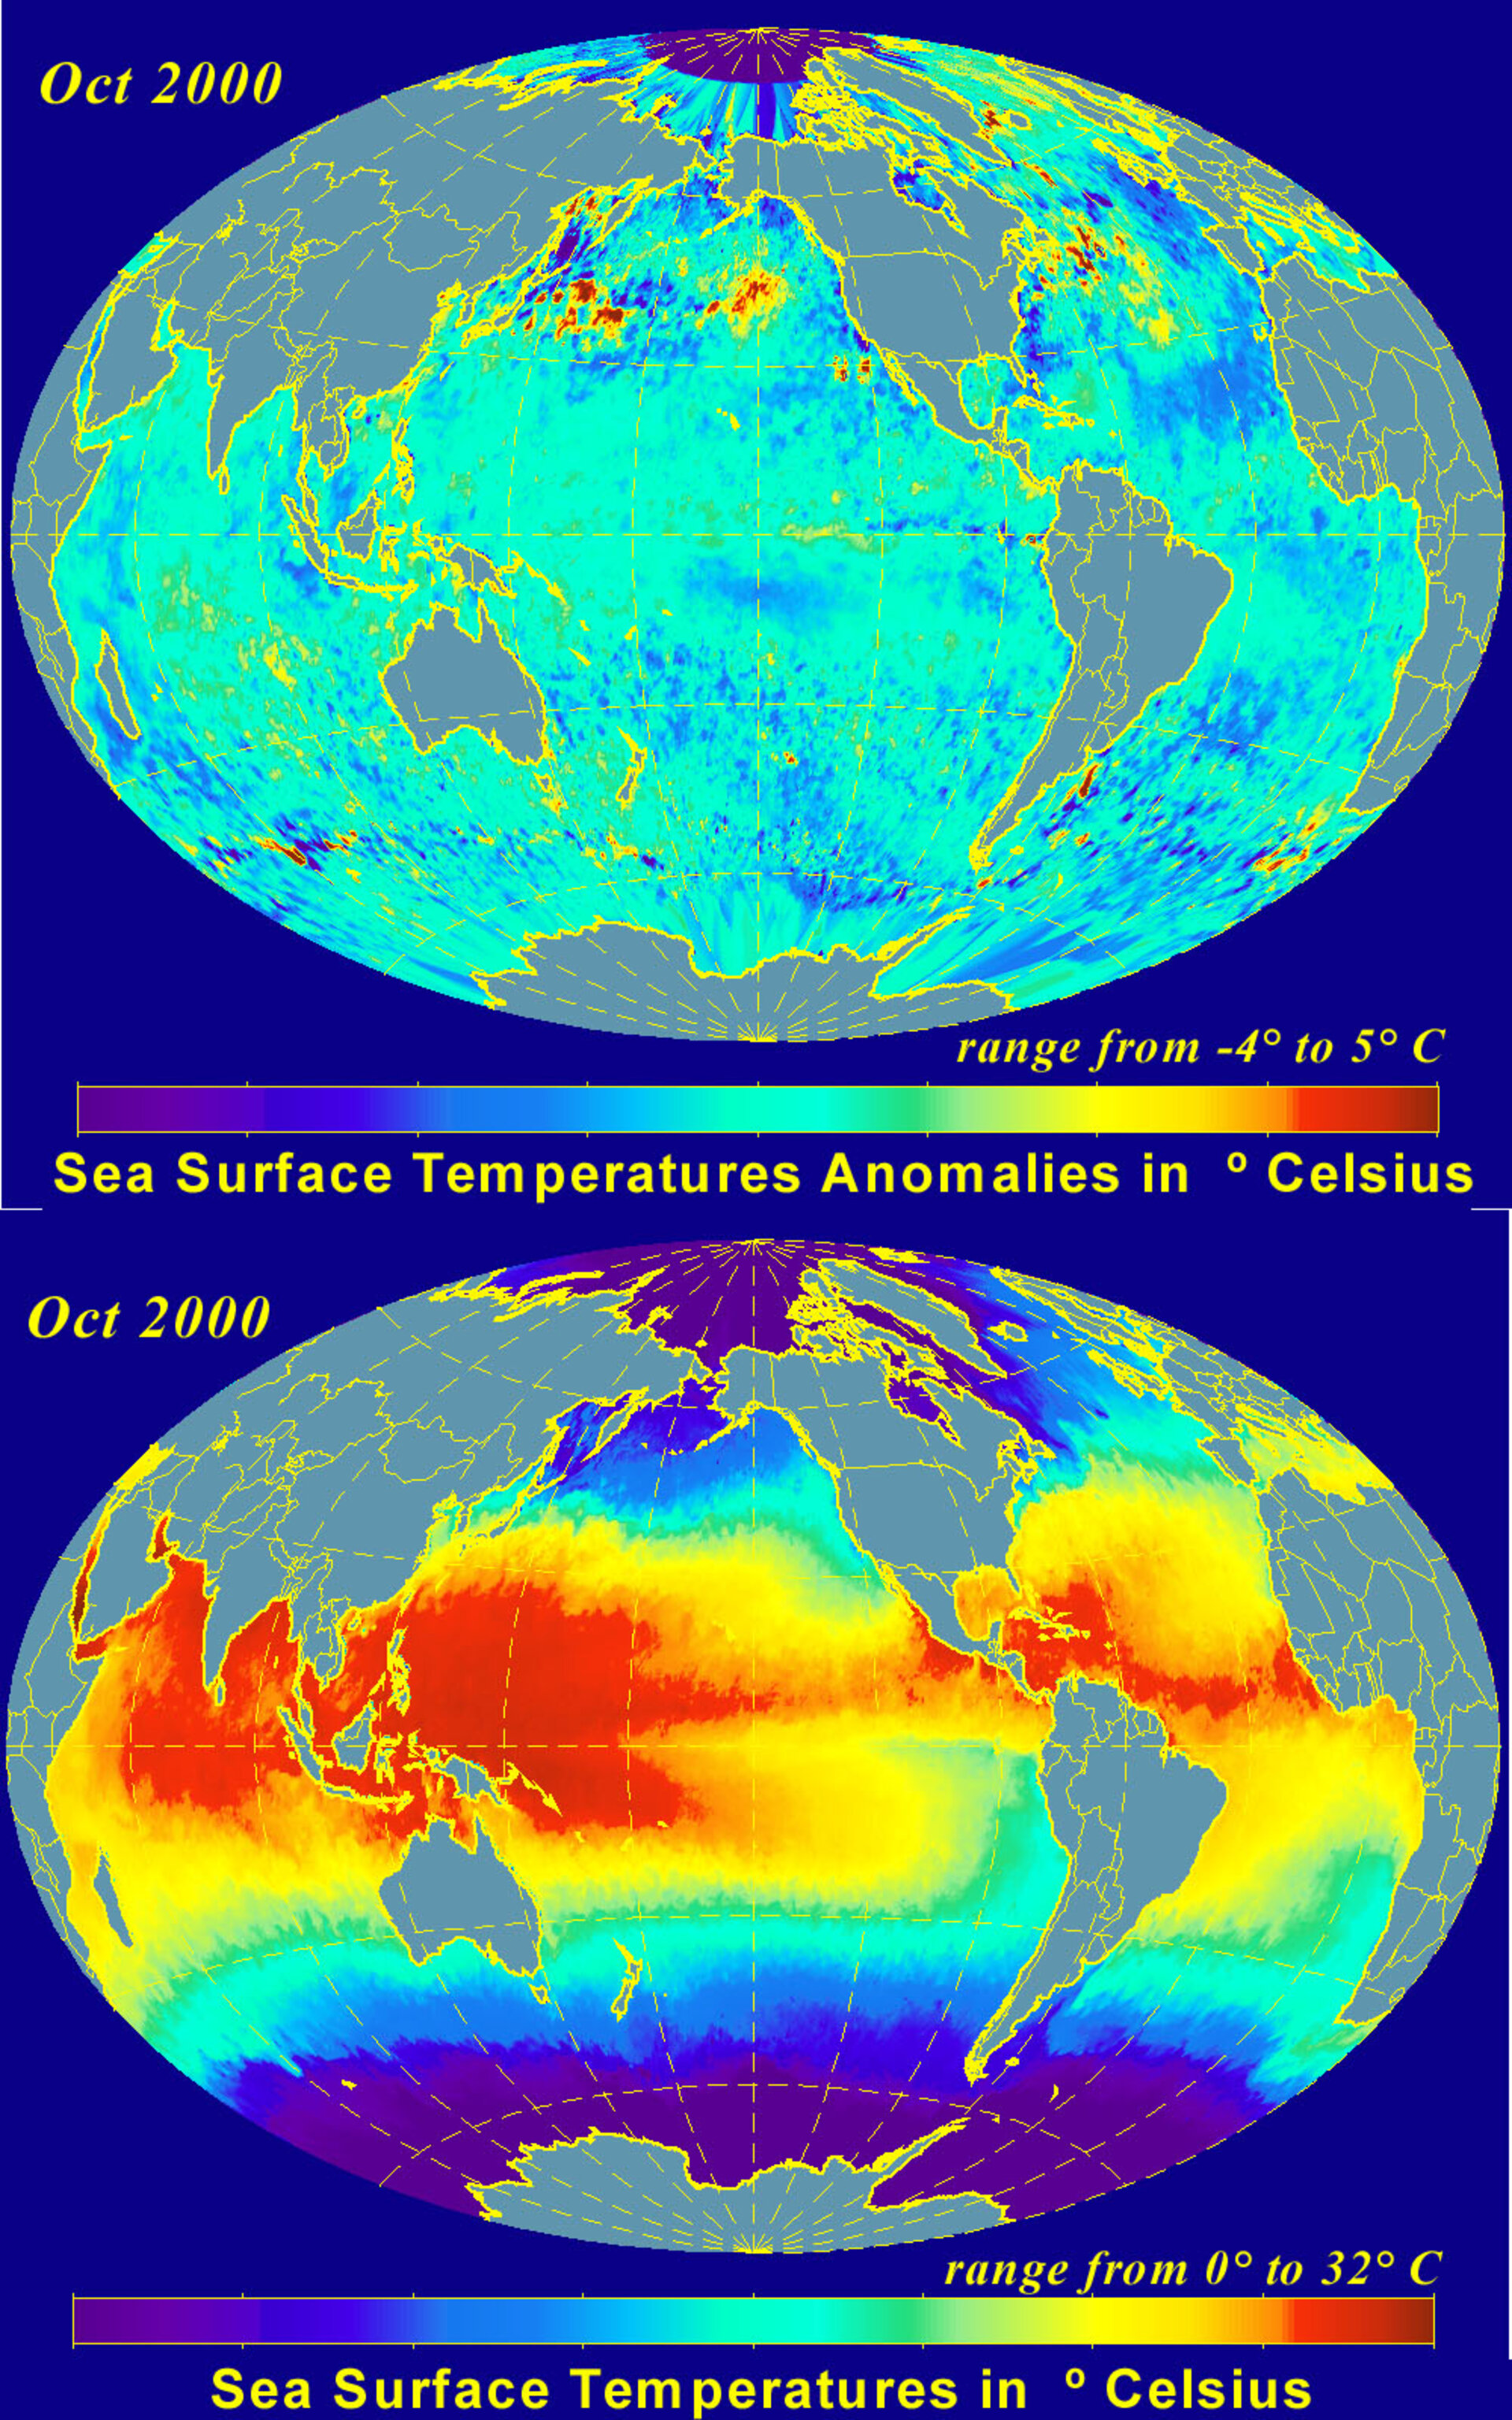 Temperature and Anomalies in October 2000